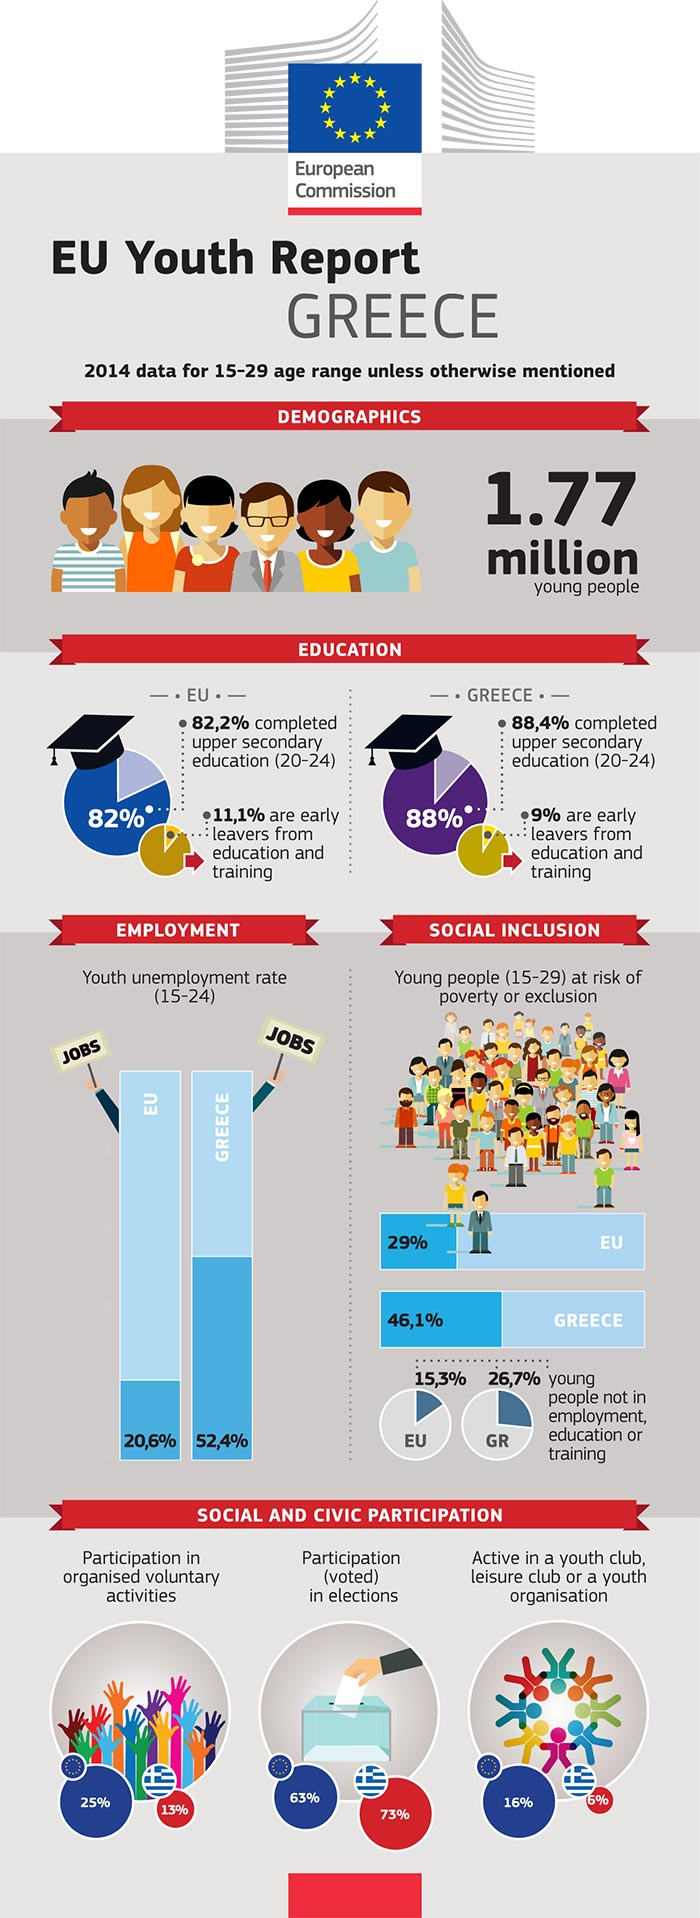 EU Youth Report infographic: Greece